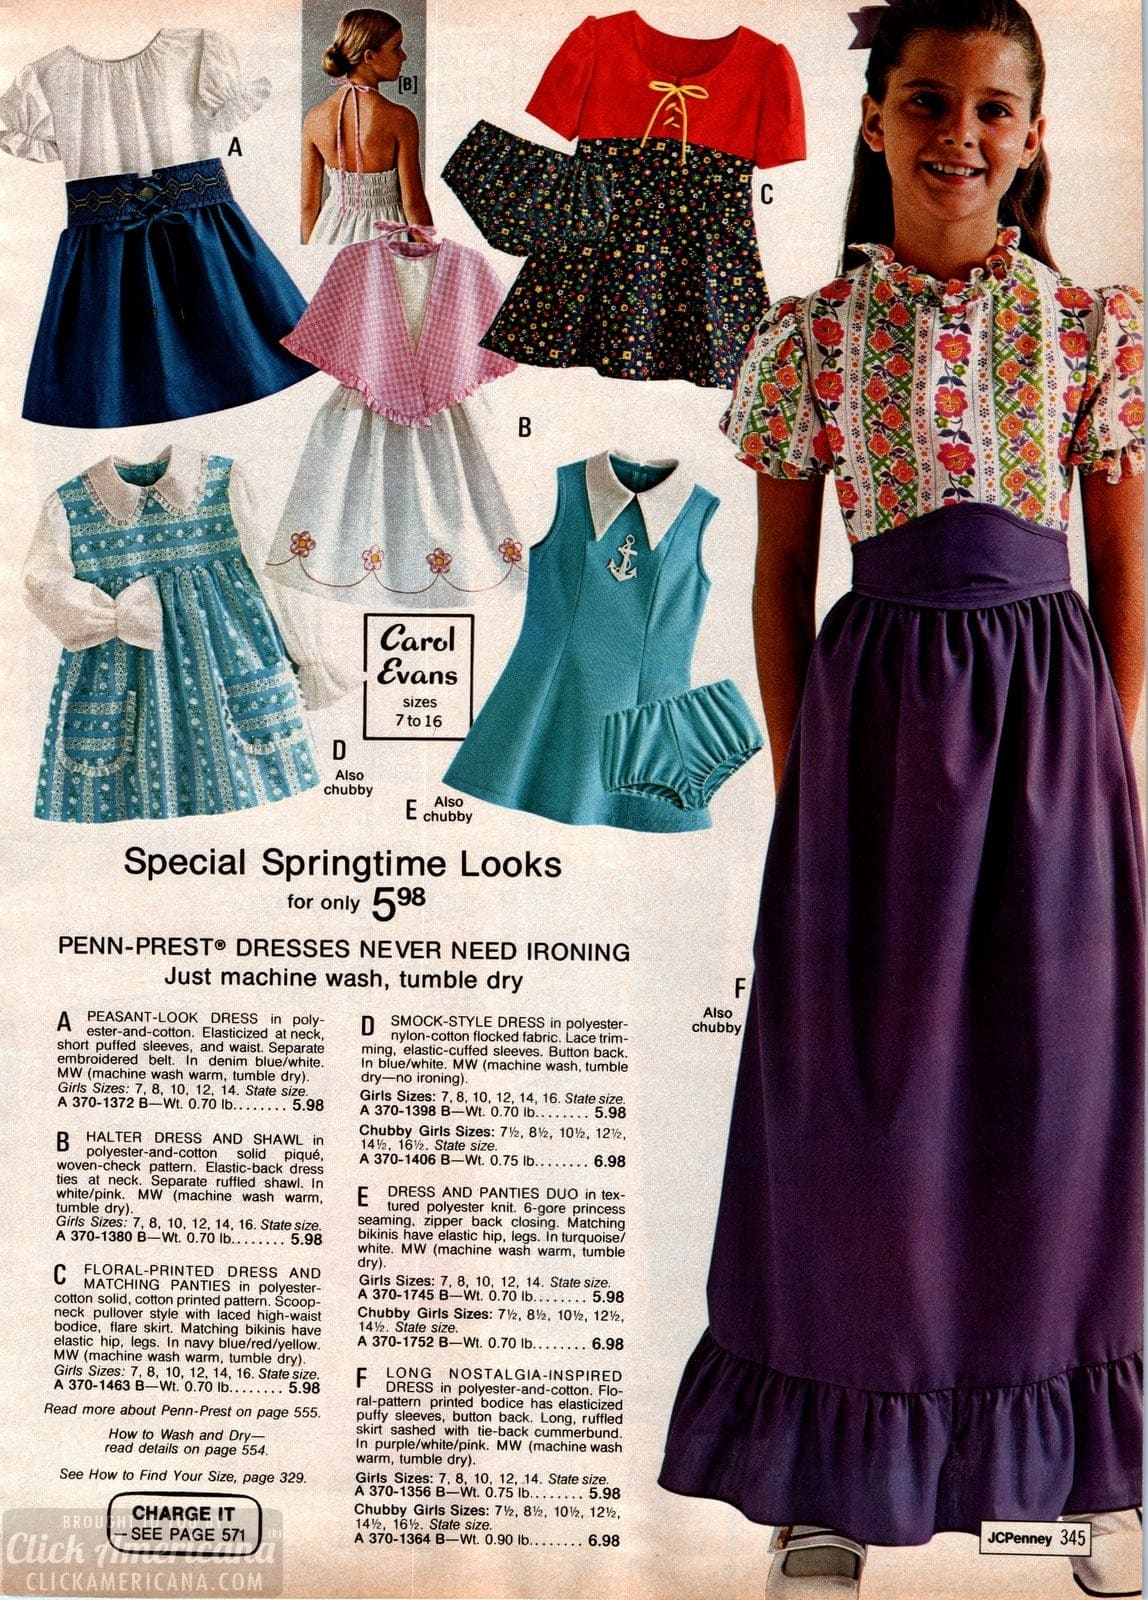 Vintage skirts and dresses for girls - peasant look and halter dress plus smock-style dresses